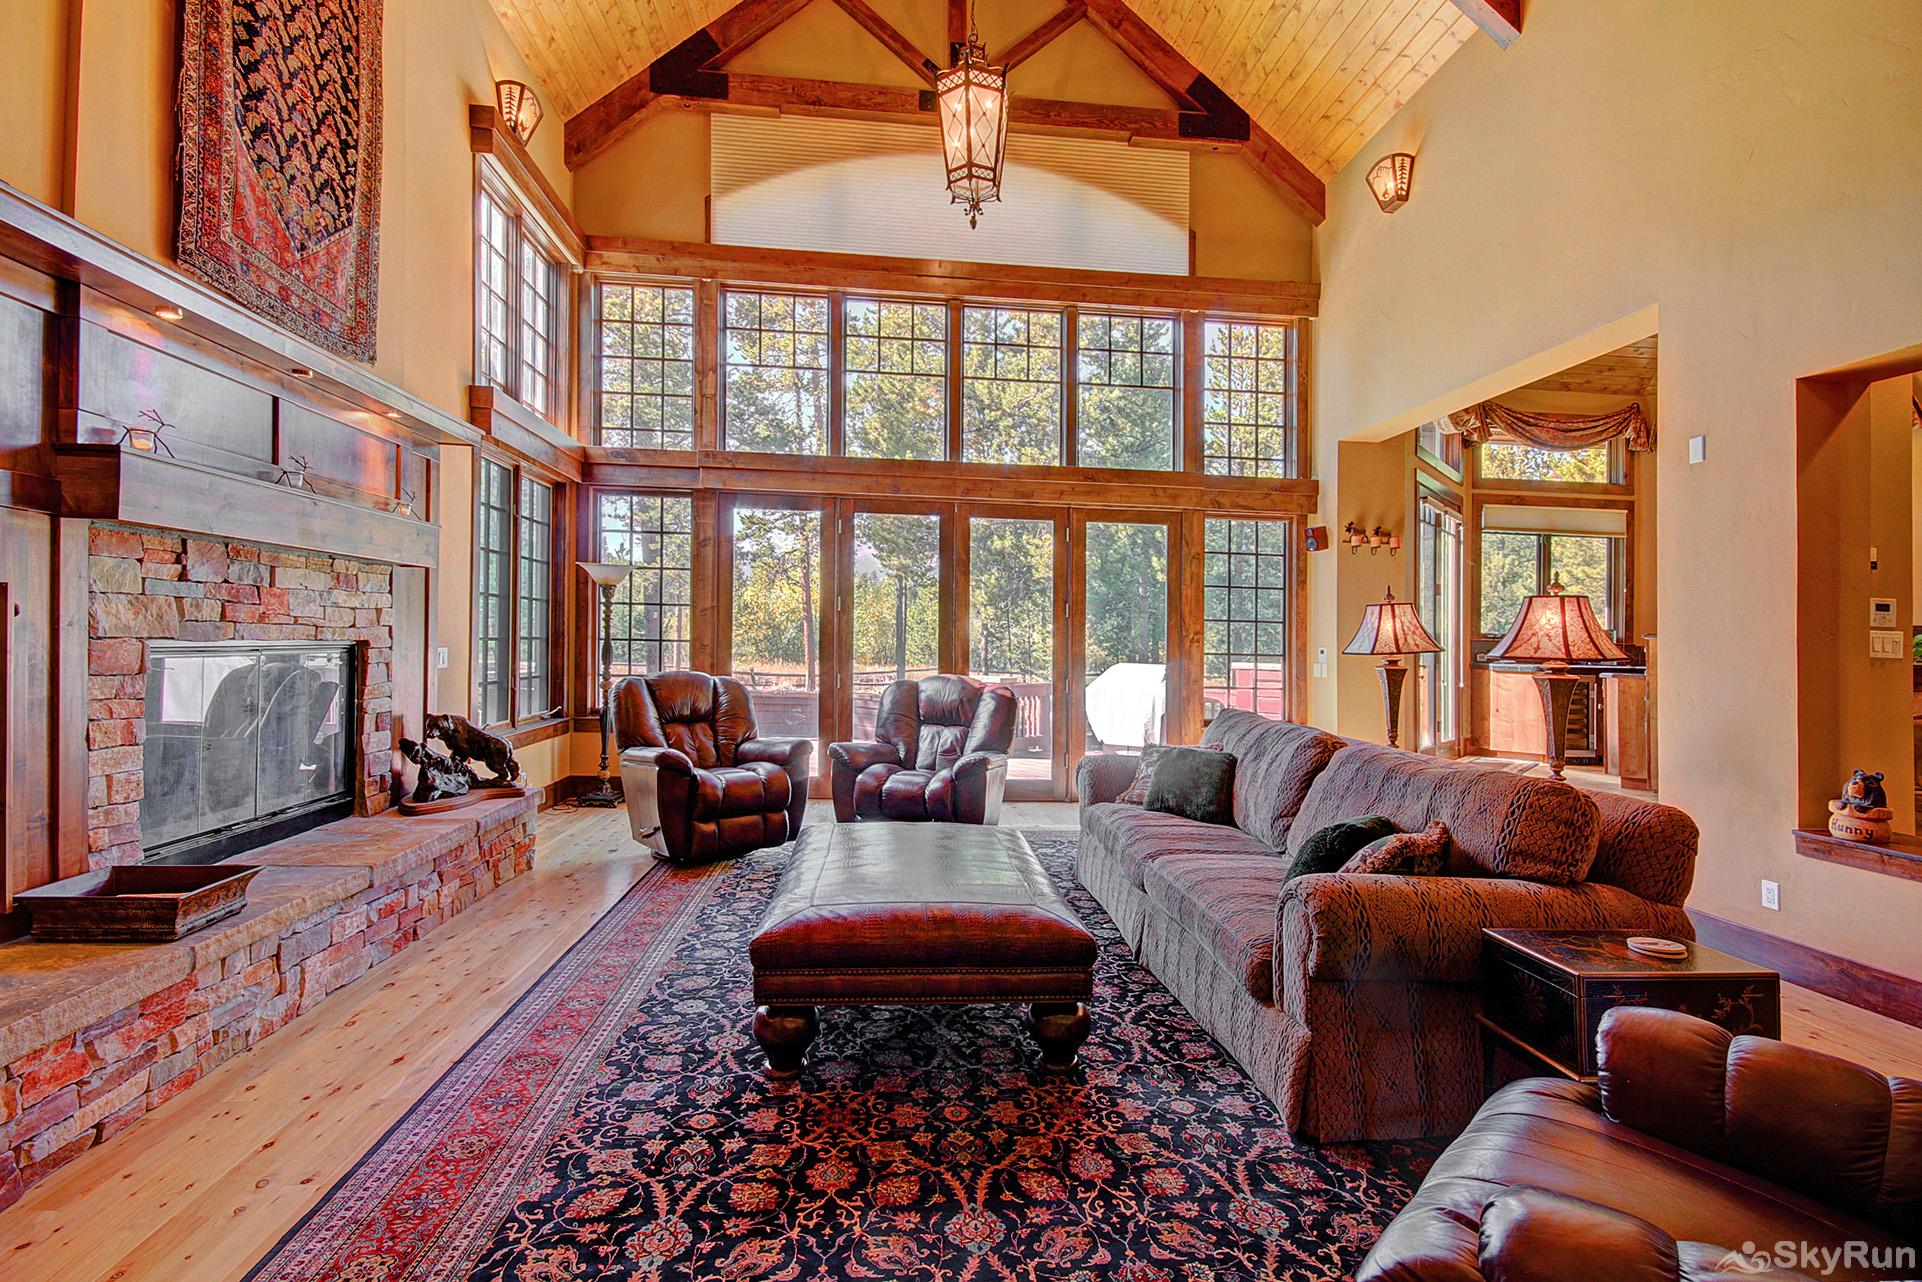 Marksberry Lodge Living room with large windows to provide plenty of natural lighting